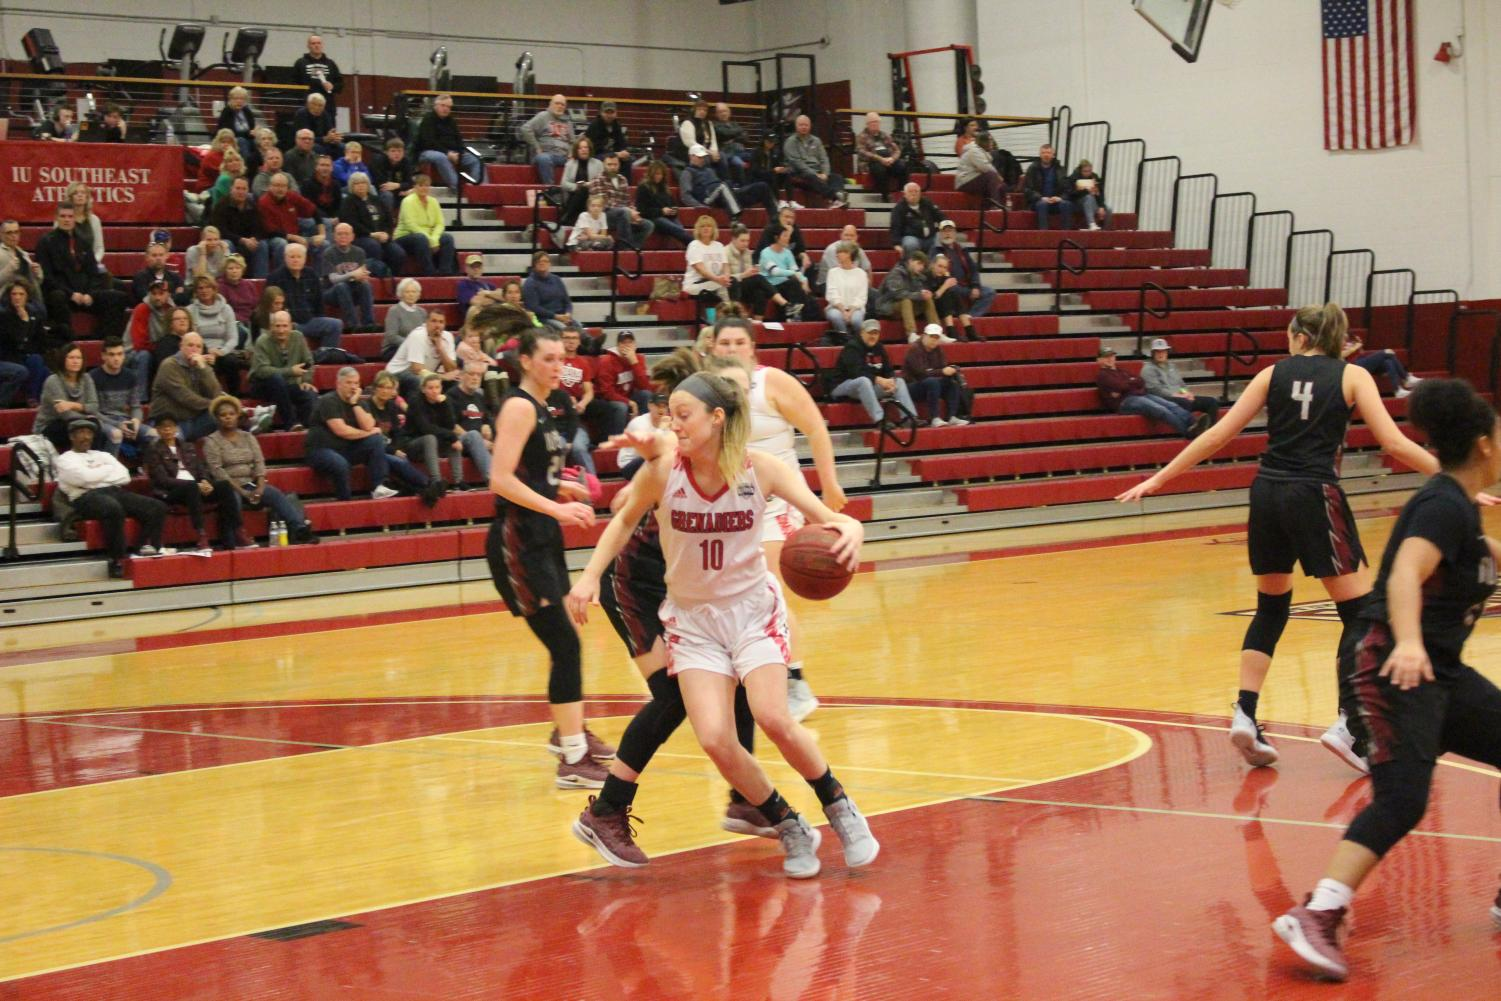 Senior Josie Hockman tries to get around her defender in the second half against IU East